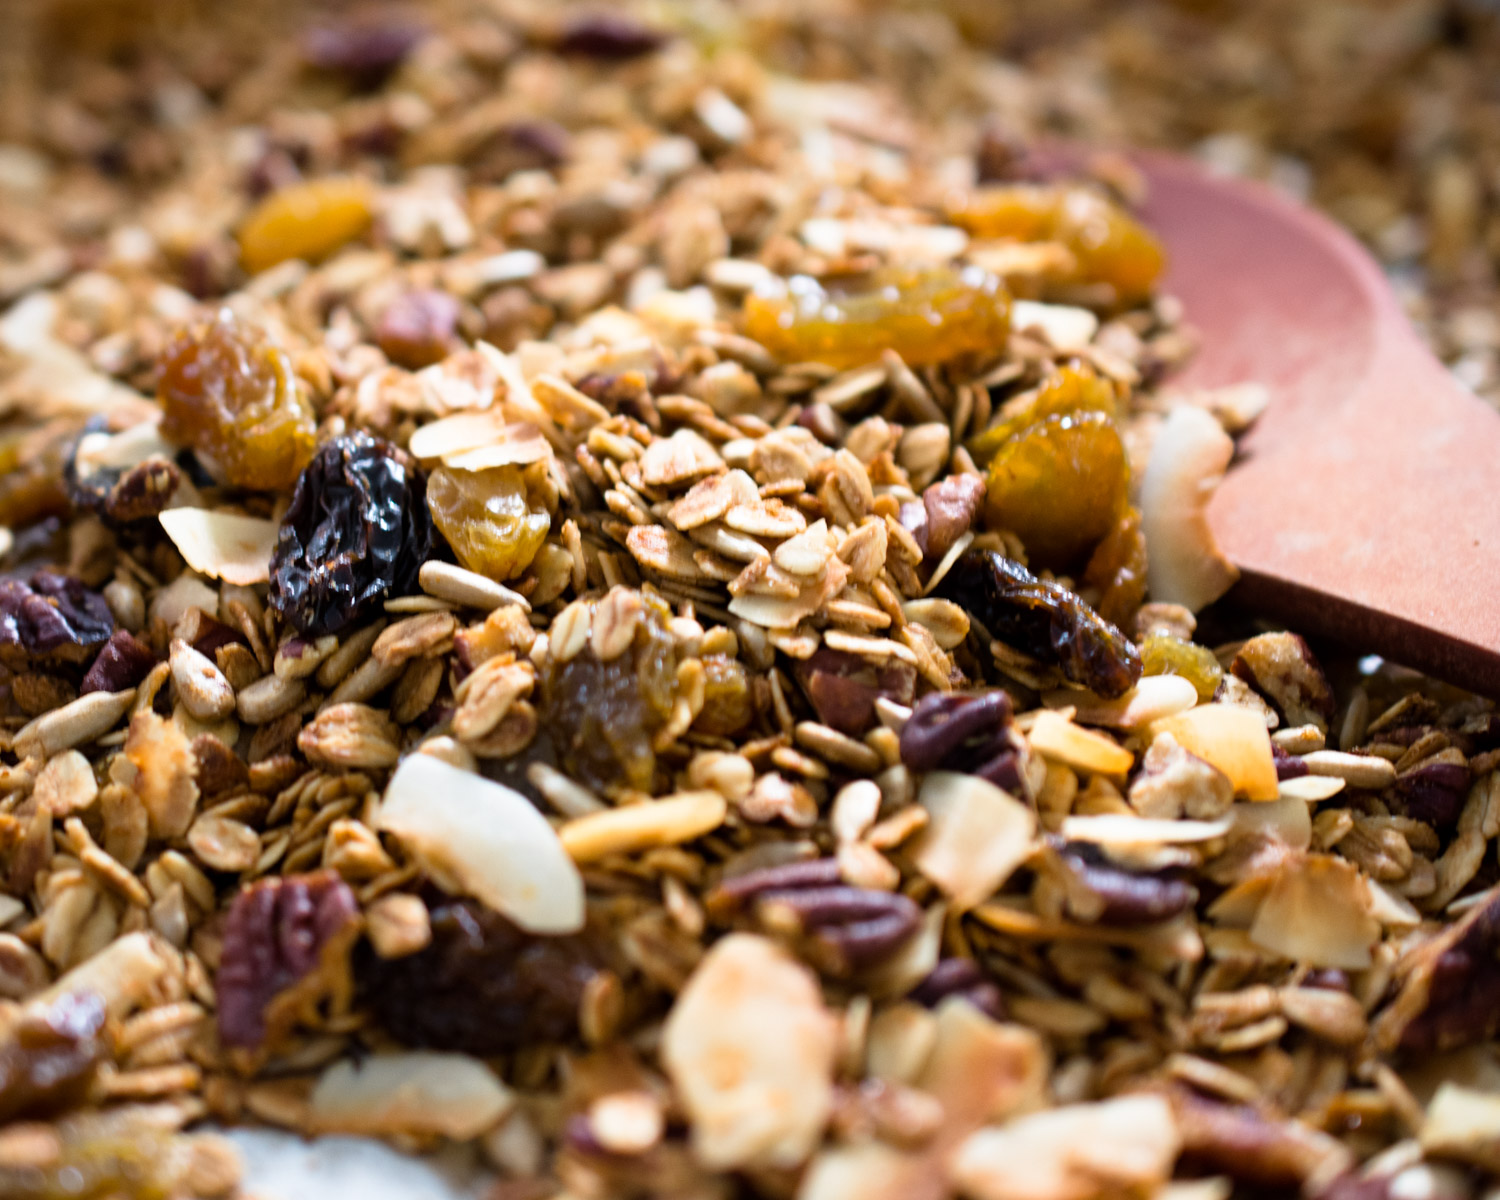 Lemon pecan granola, fresh out of the oven and ready to eat.